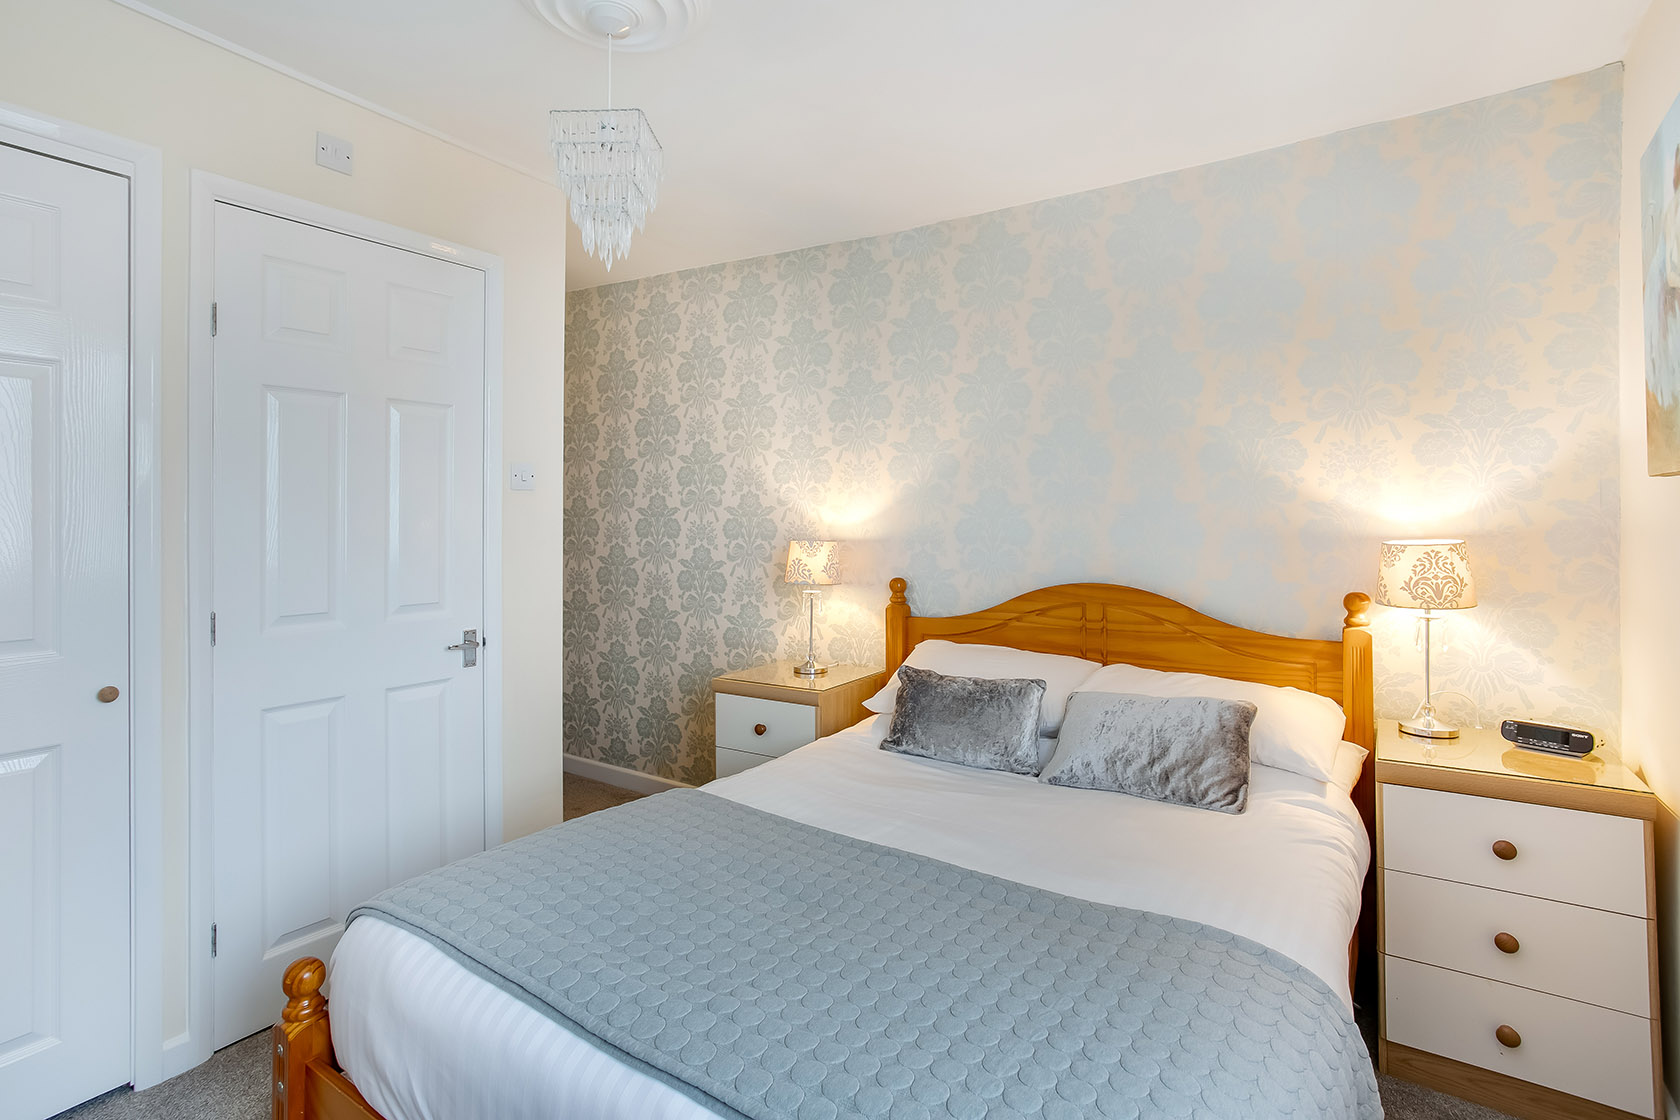 Trelawney Hotel in Torquay - Luxury Bed and Breakfast-SmallDouble